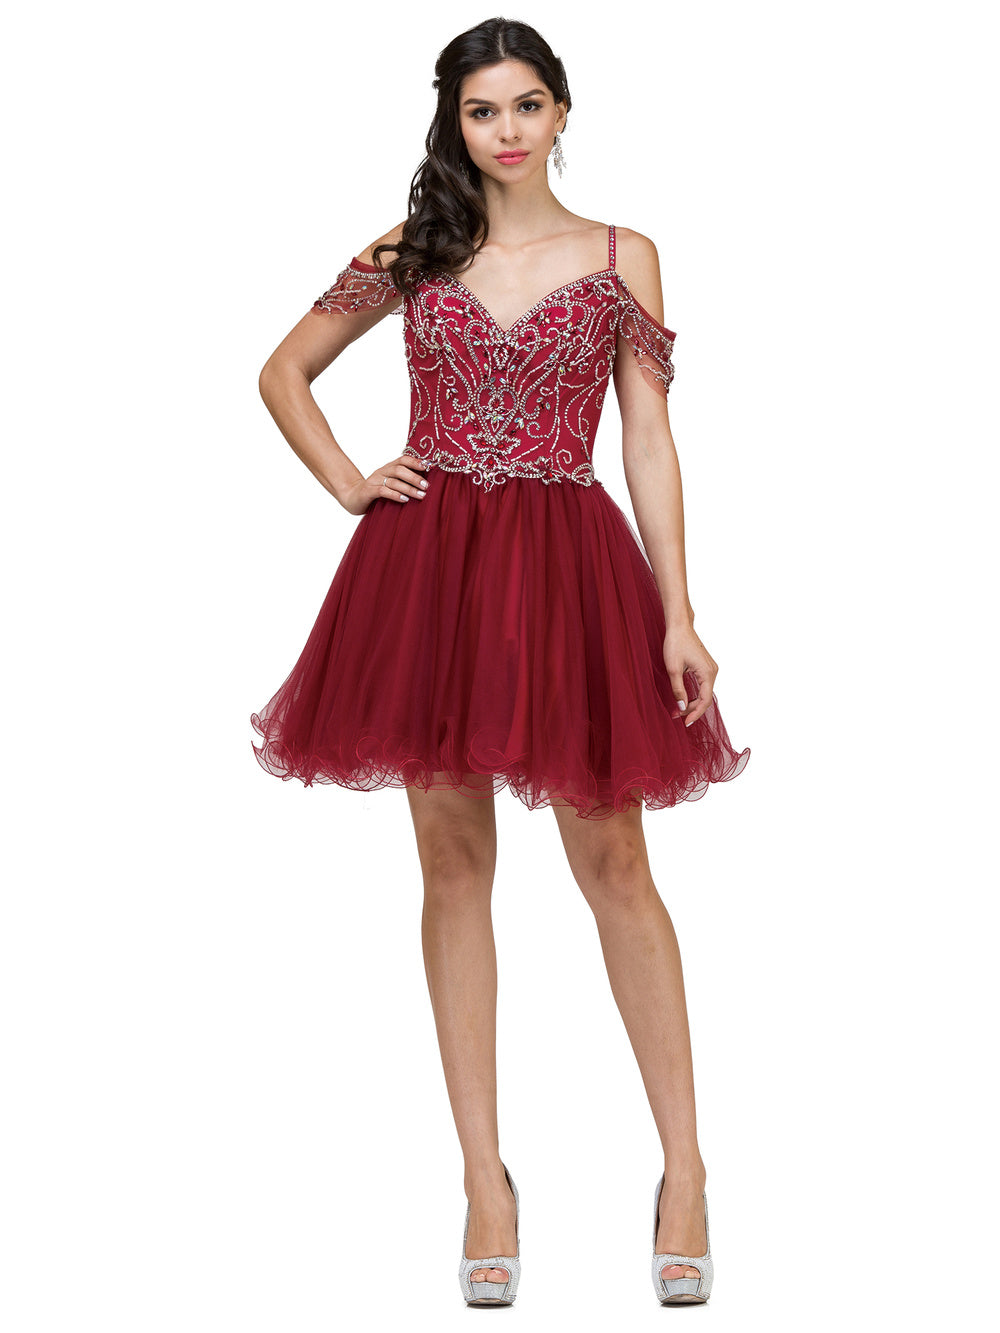 DQ 2023 - Short Off-The-Shoulder Homecoming Dress with Corset Back - Diggz Prom